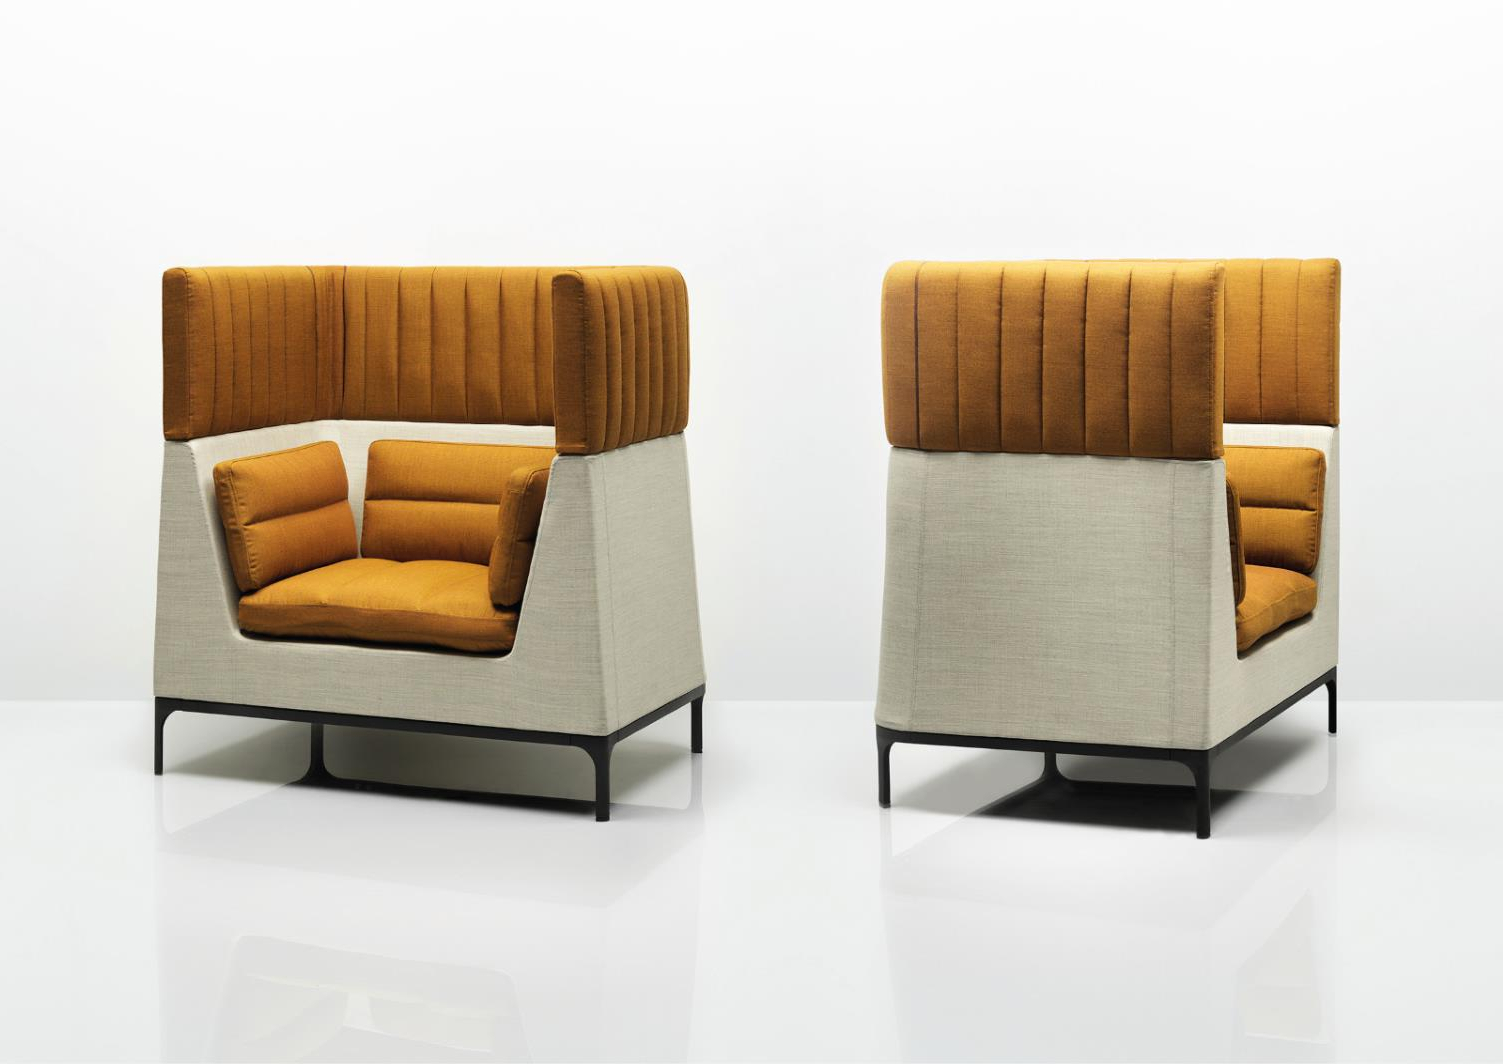 Reception & Soft Seating – Now Furniture Within Popular Haven Sofa Chairs (View 18 of 20)